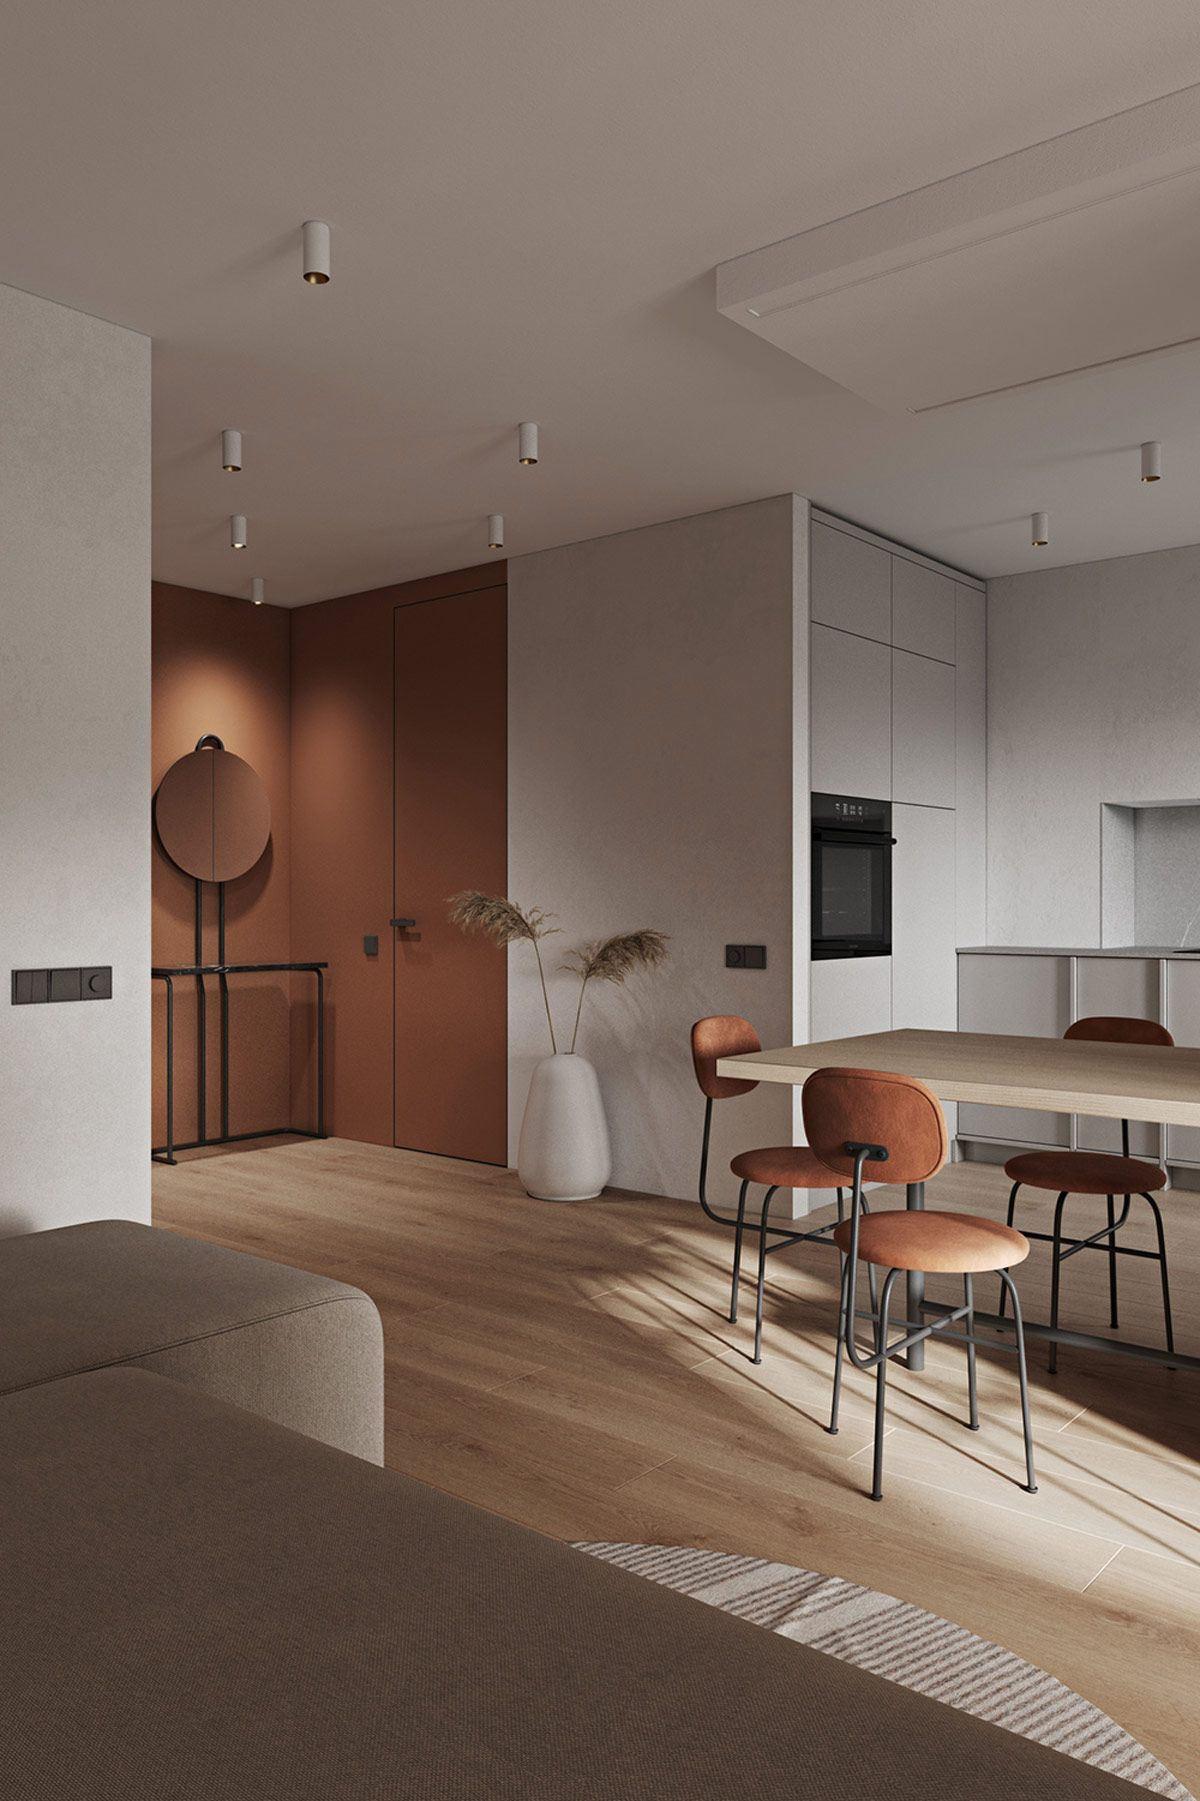 Introducing Depth, Warmth & Interesting Furniture Into Flat Spaces